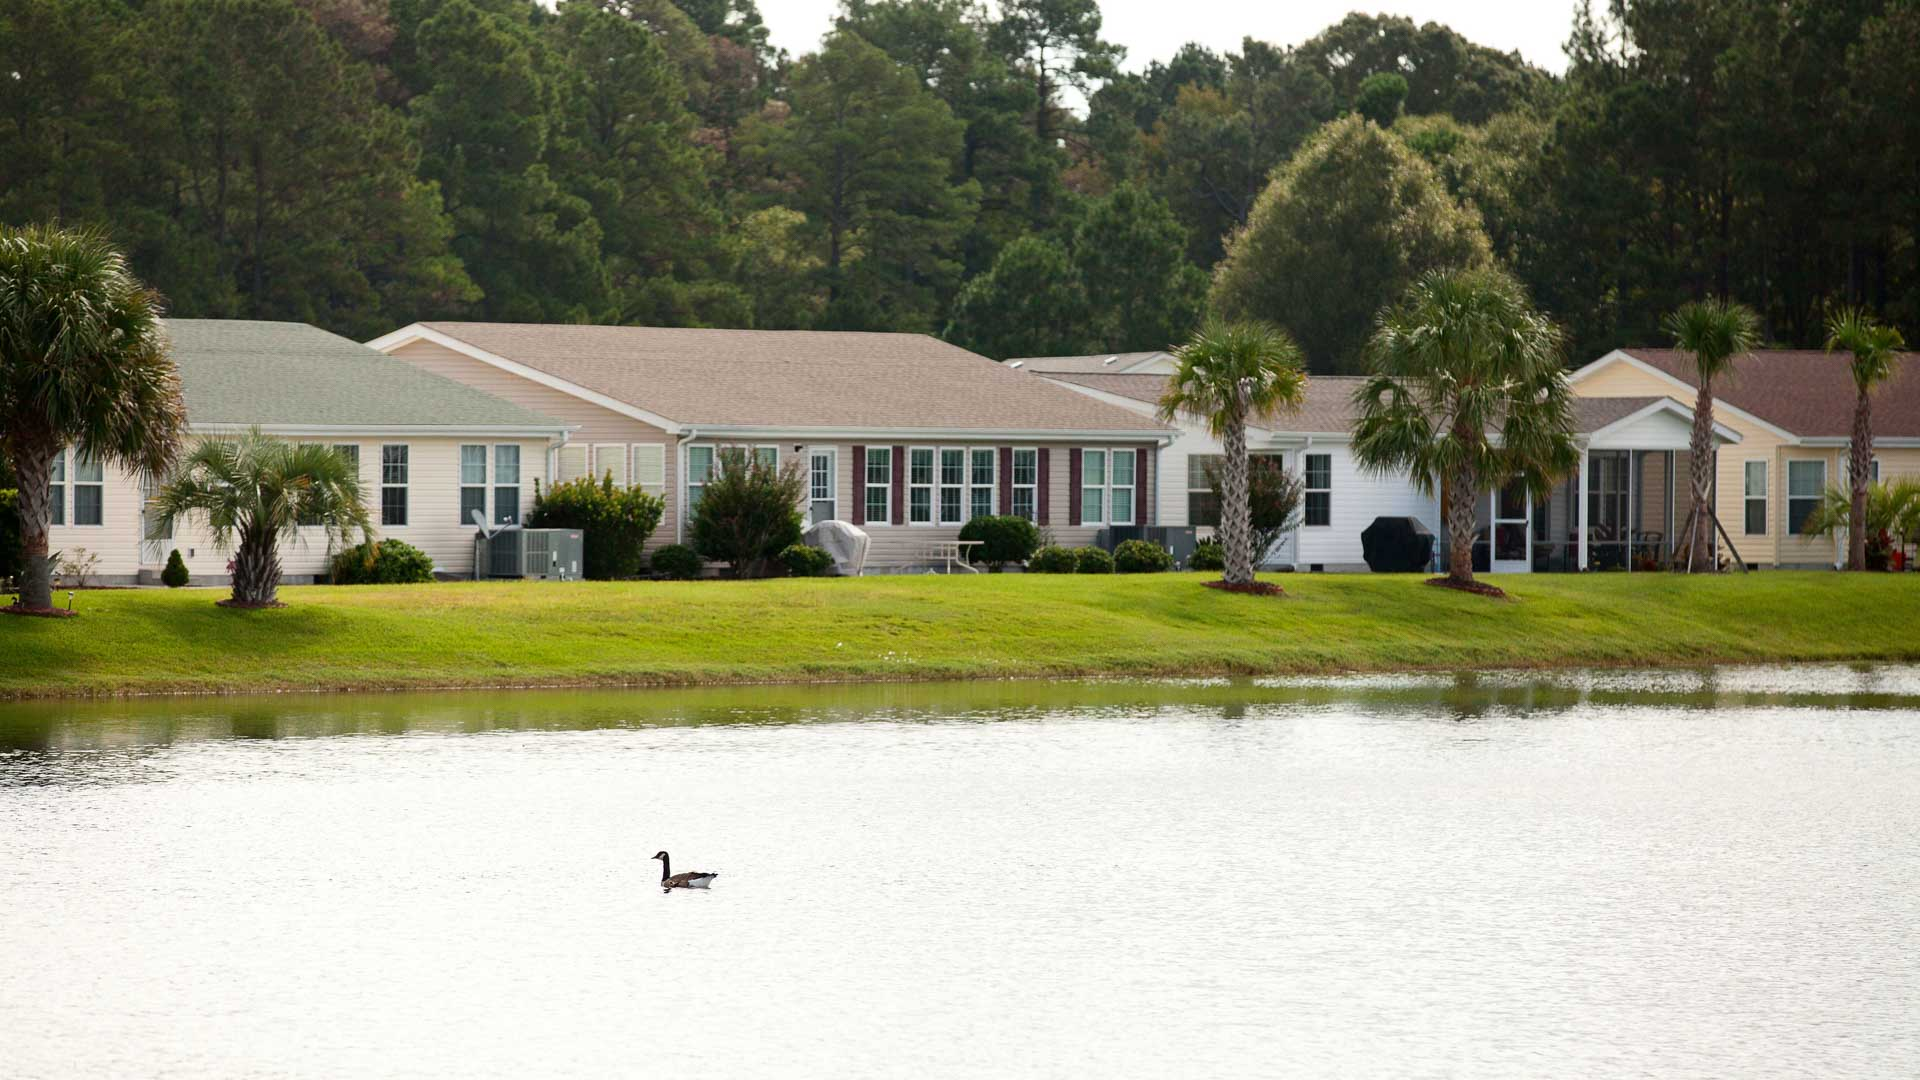 Lakeside Crossing 55+ Manufactured Homes Community Lakefront Residences in Conway, SC